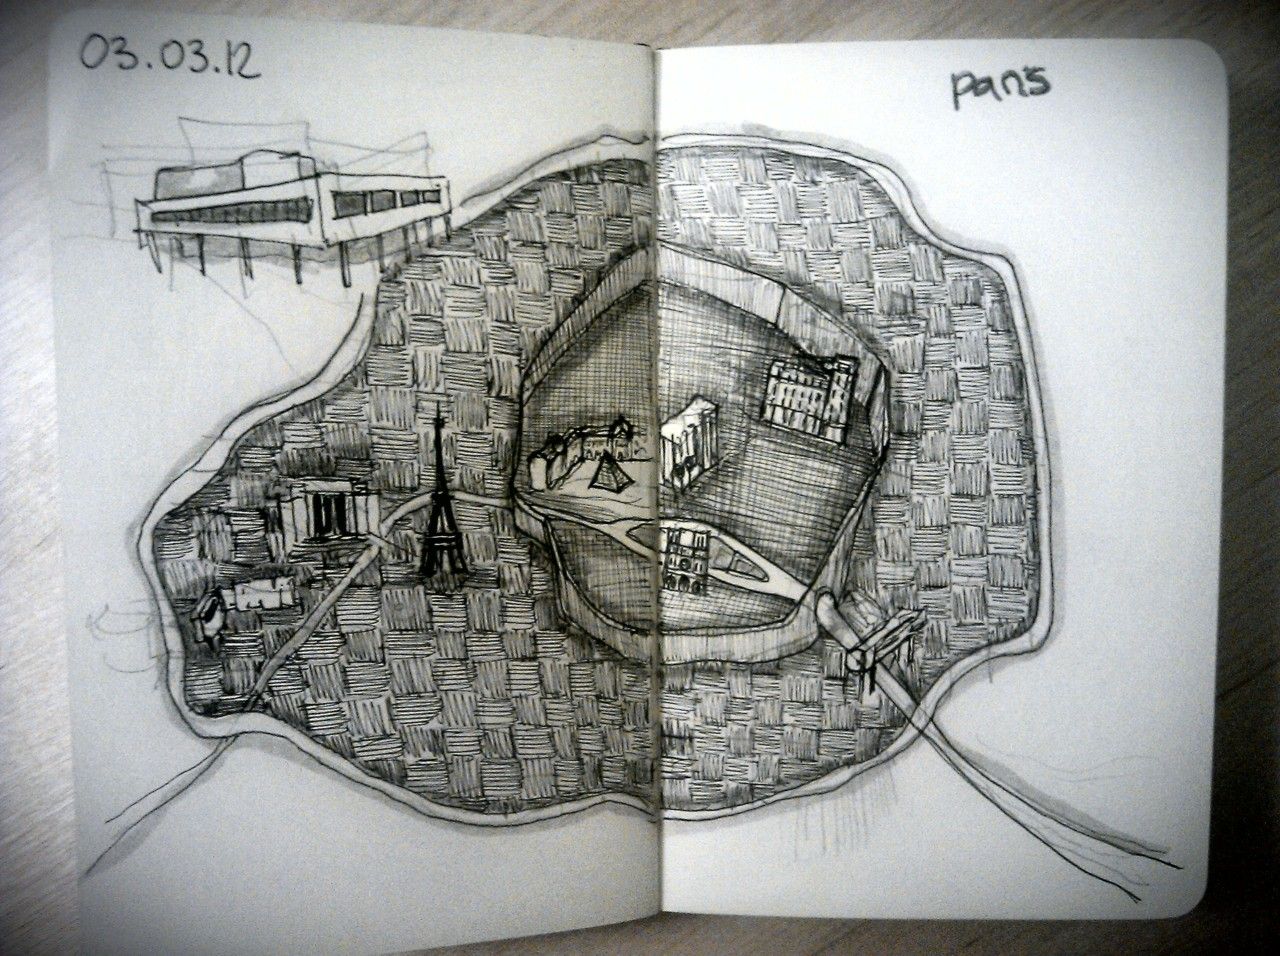 365 drawings later  … day 32 … paris (a few thoughts for my trip this week)